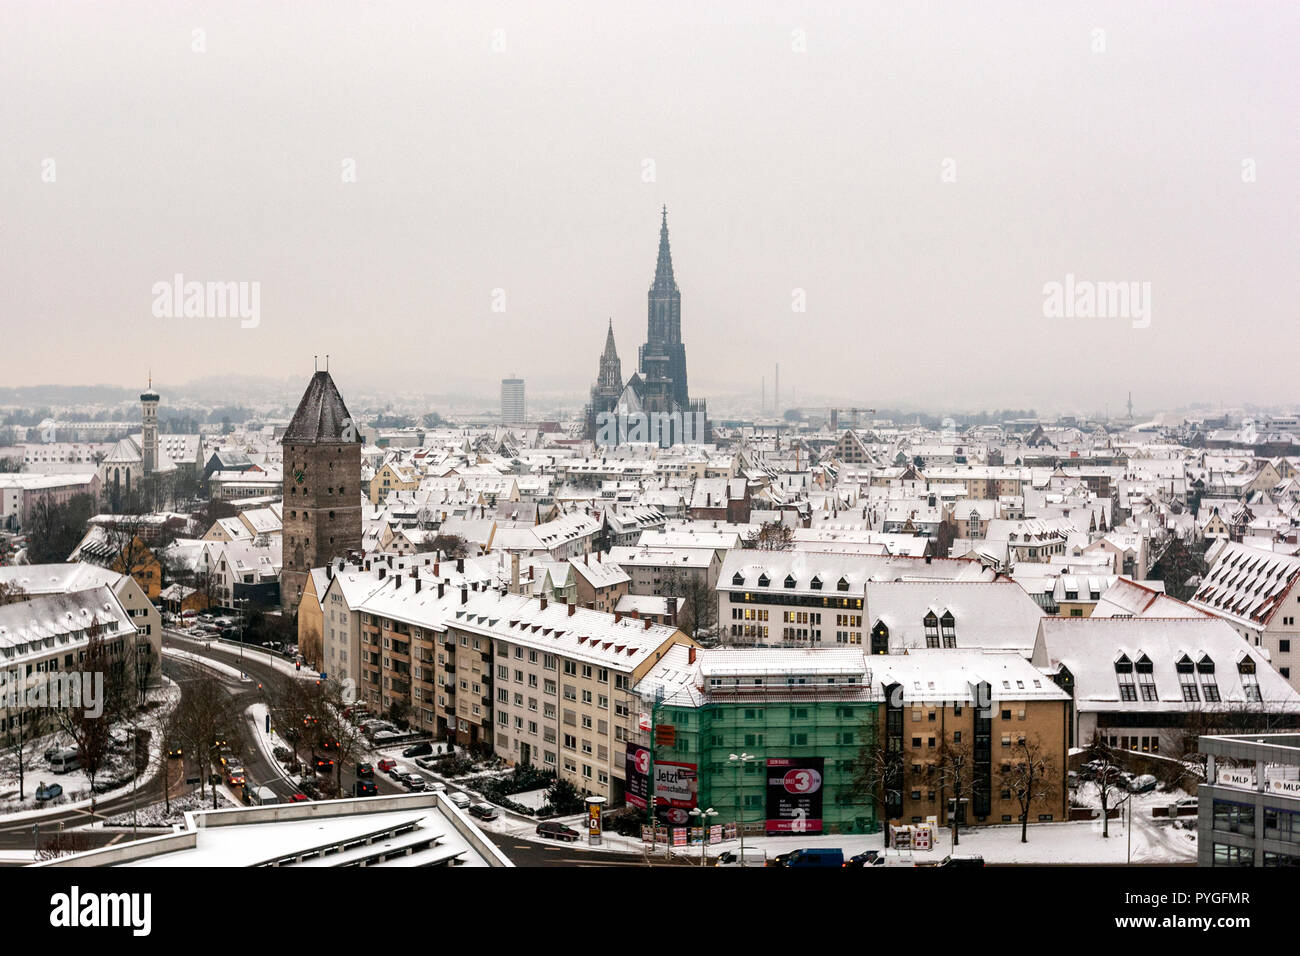 Snow winter view of Ulm from Maritim Hotel with the Ulm Minster,, Baden-Württemberg, Germany, Stock Photo